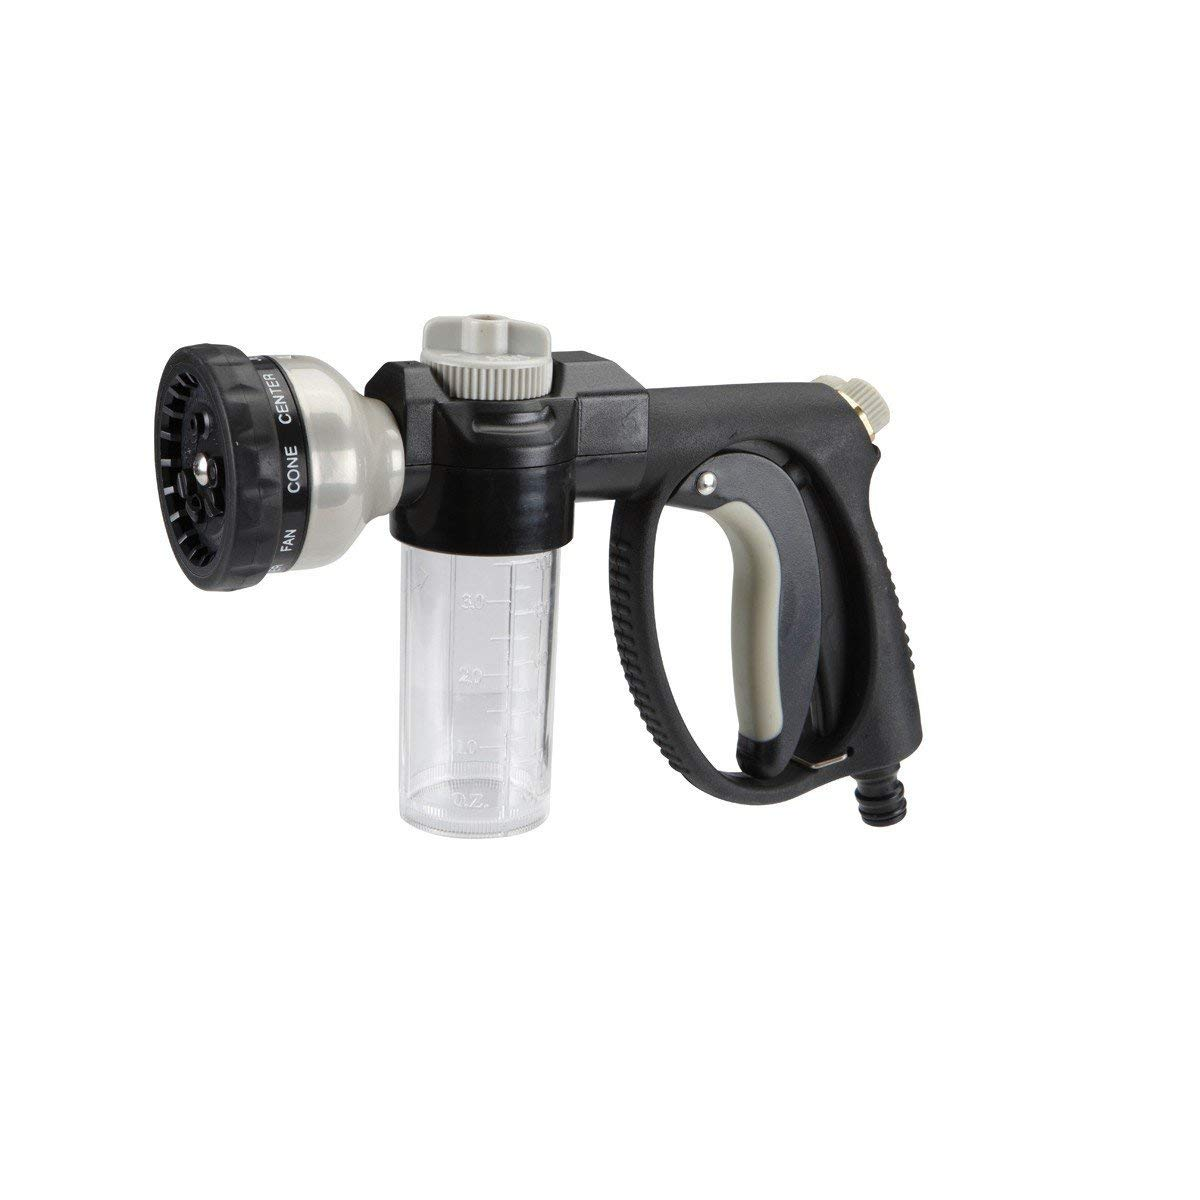 Car Wash Nozzle with Soap Dispenser and Nine Spray Settings - Jet, Mist, Flood, Flat, Angle, Shower, Fan, Cone, Center